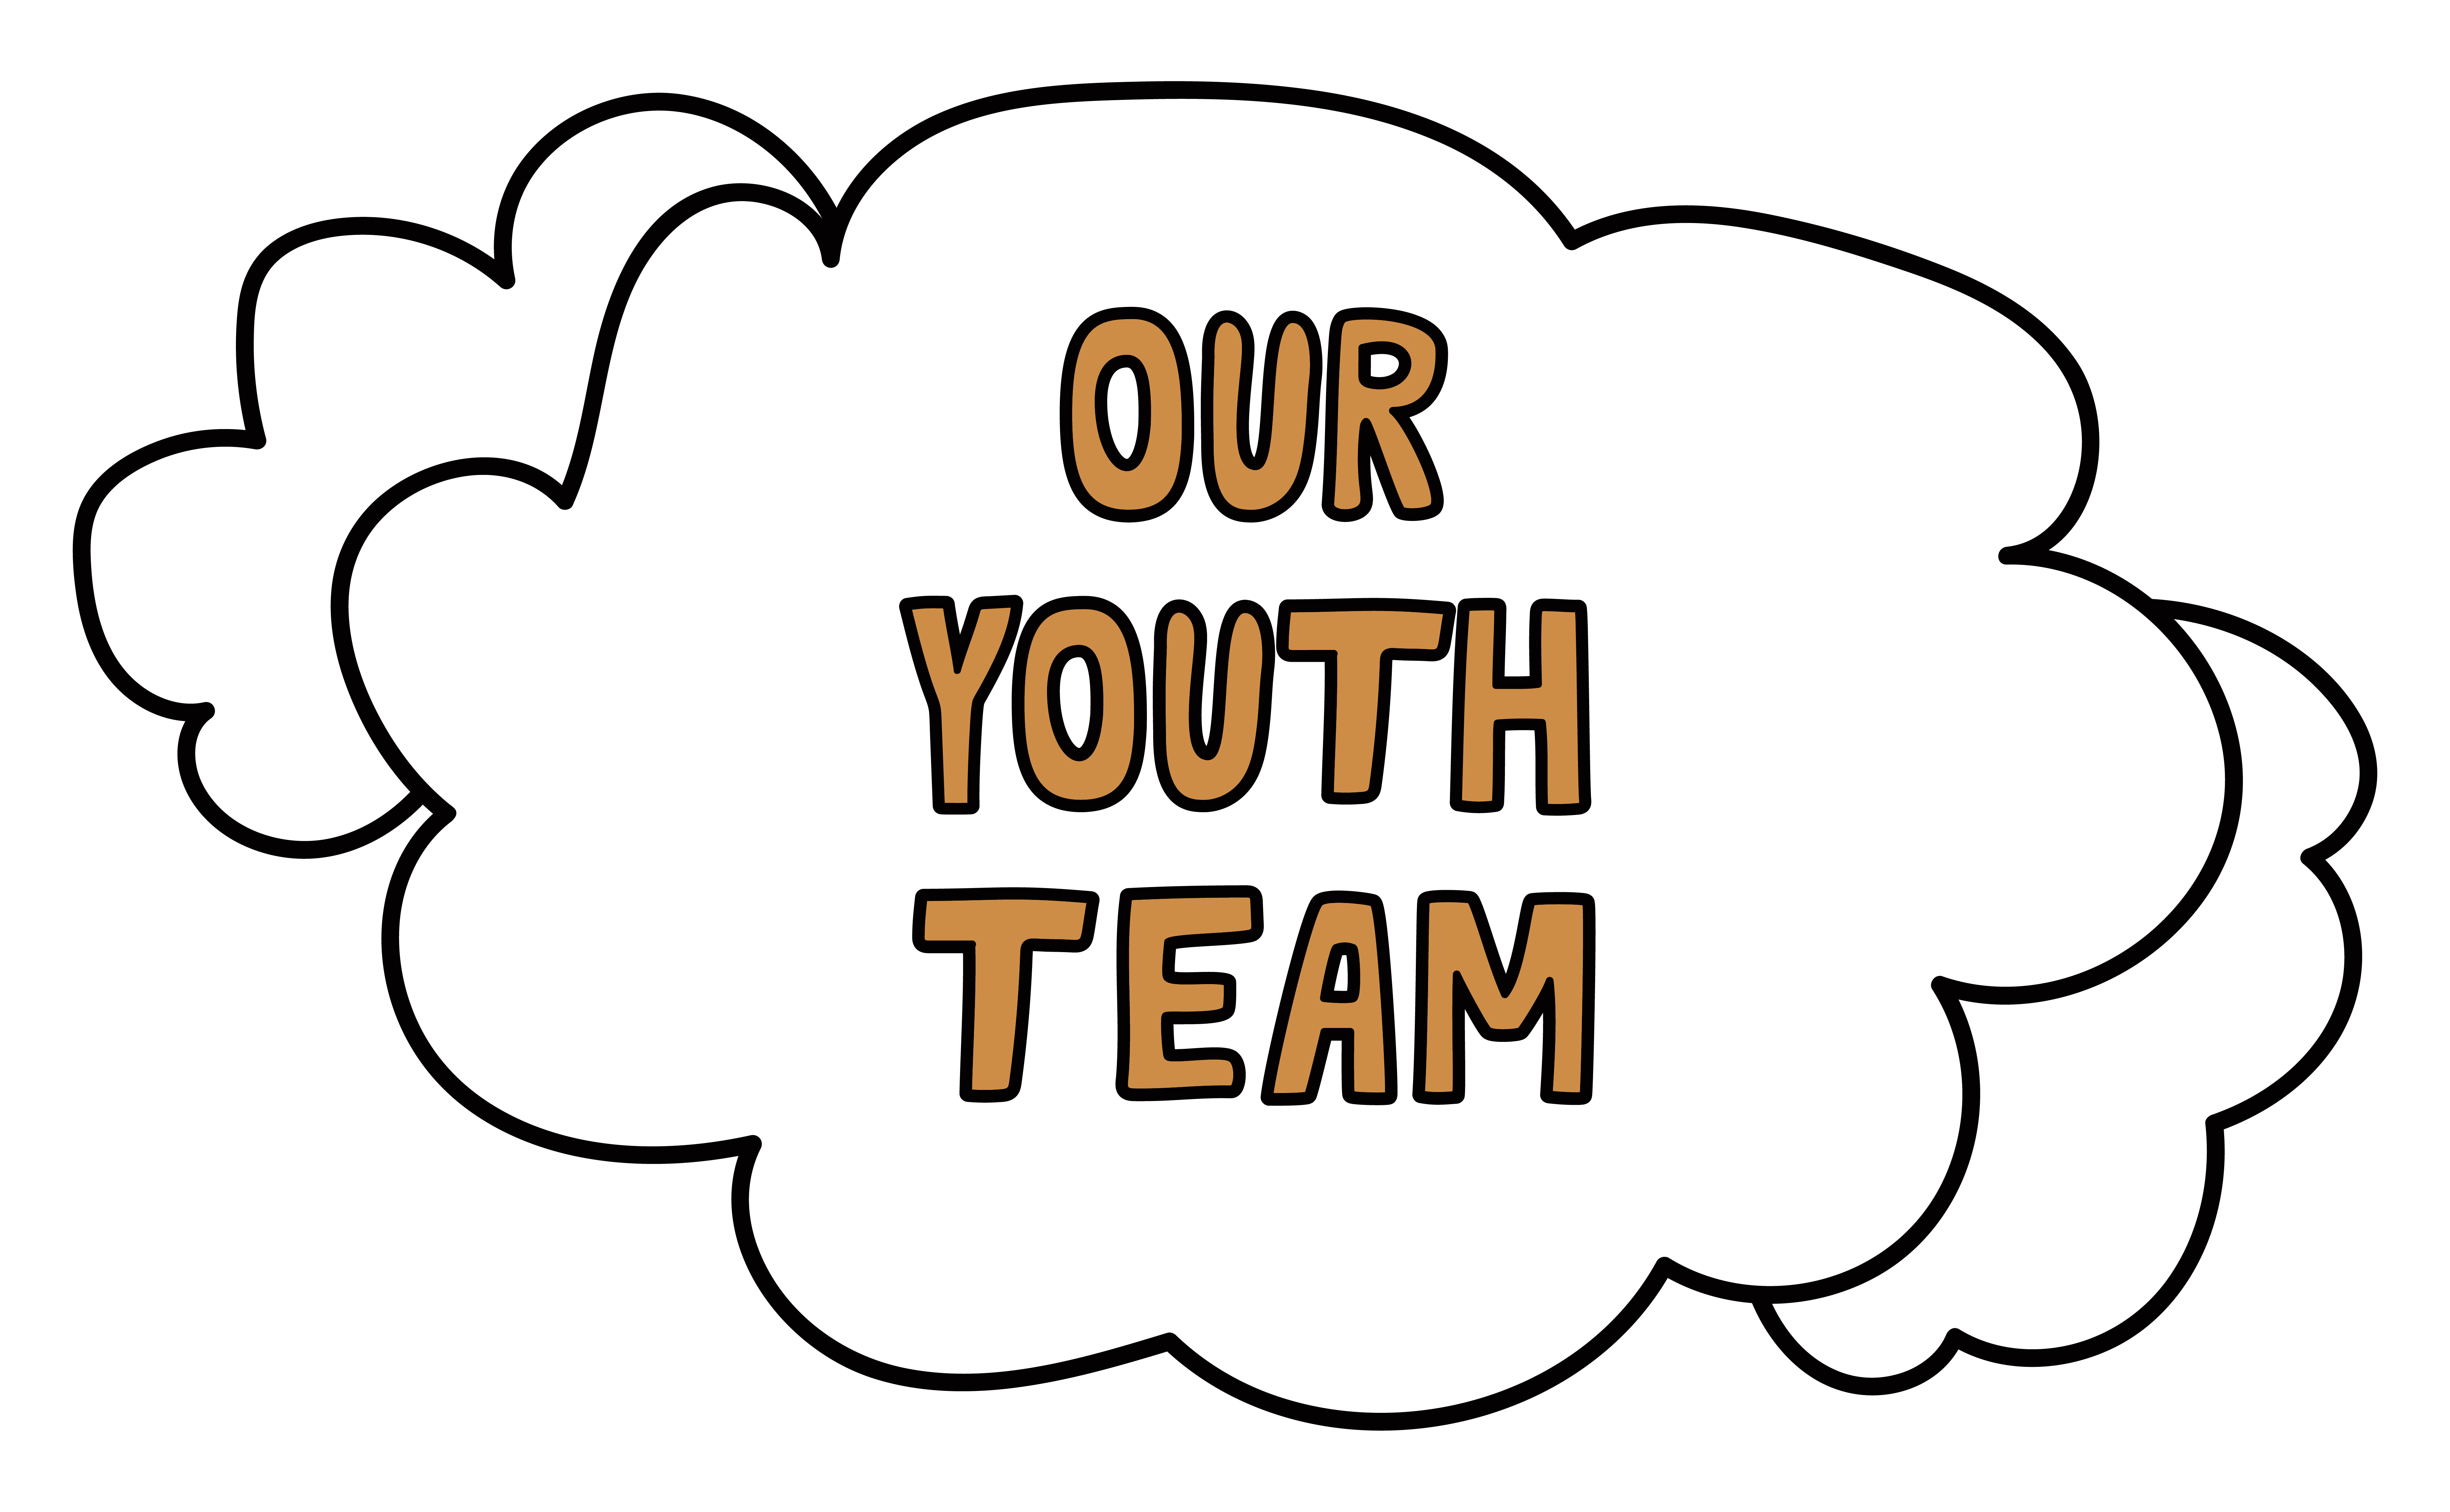 Our Youth Team